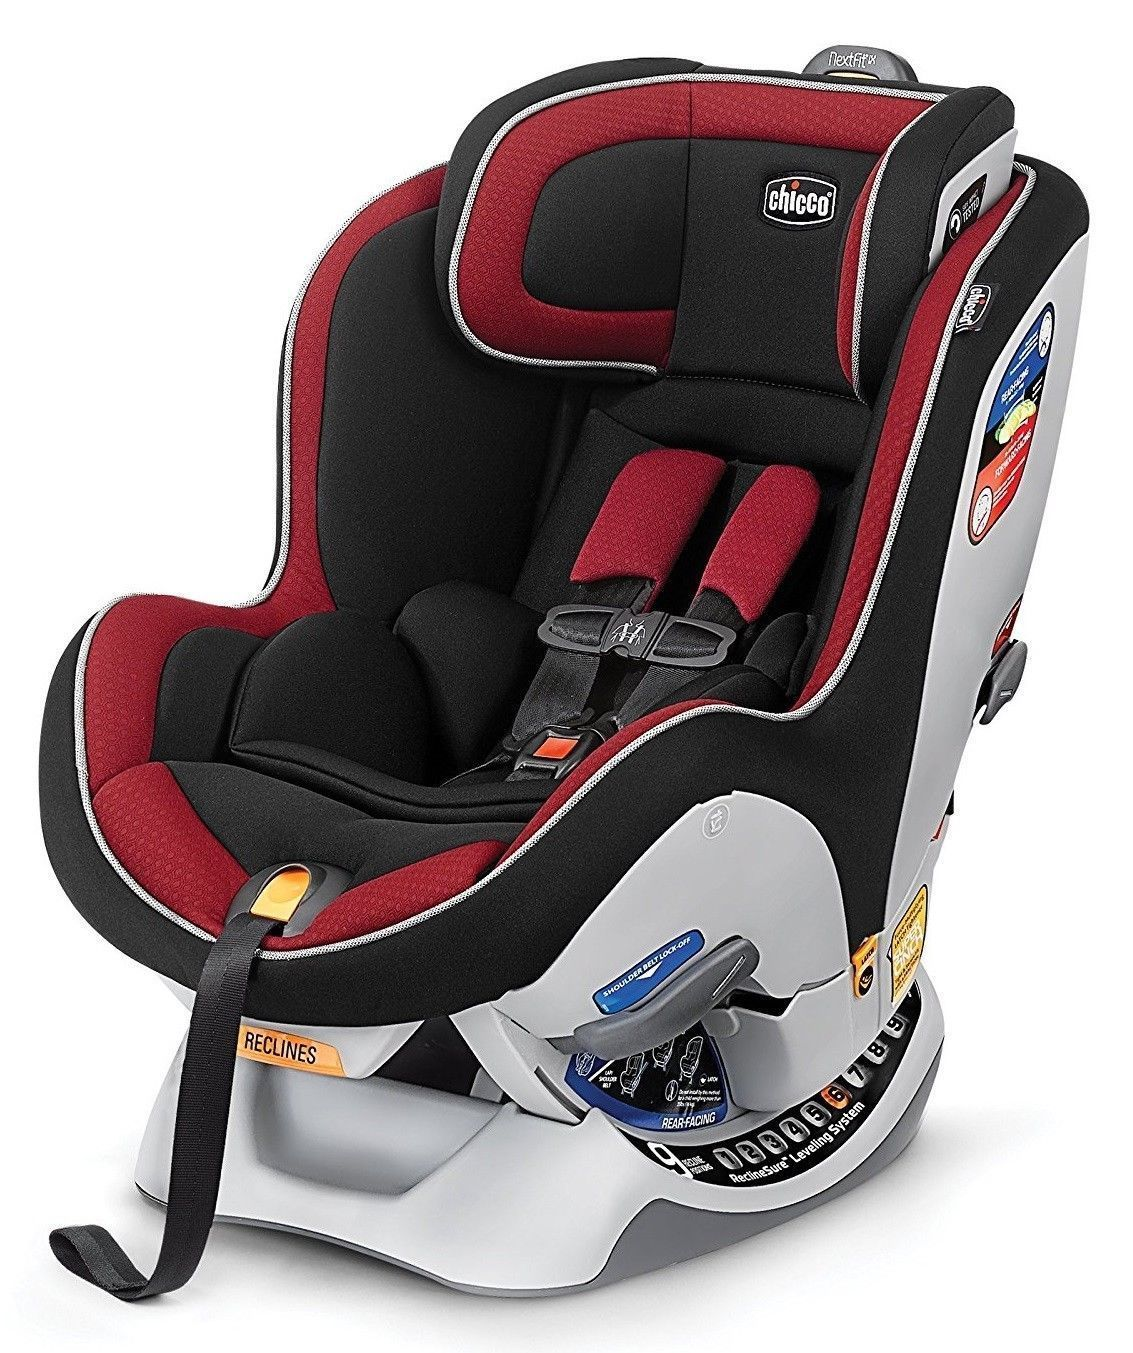 Chicco nextfit ix convertible child safety baby car seat